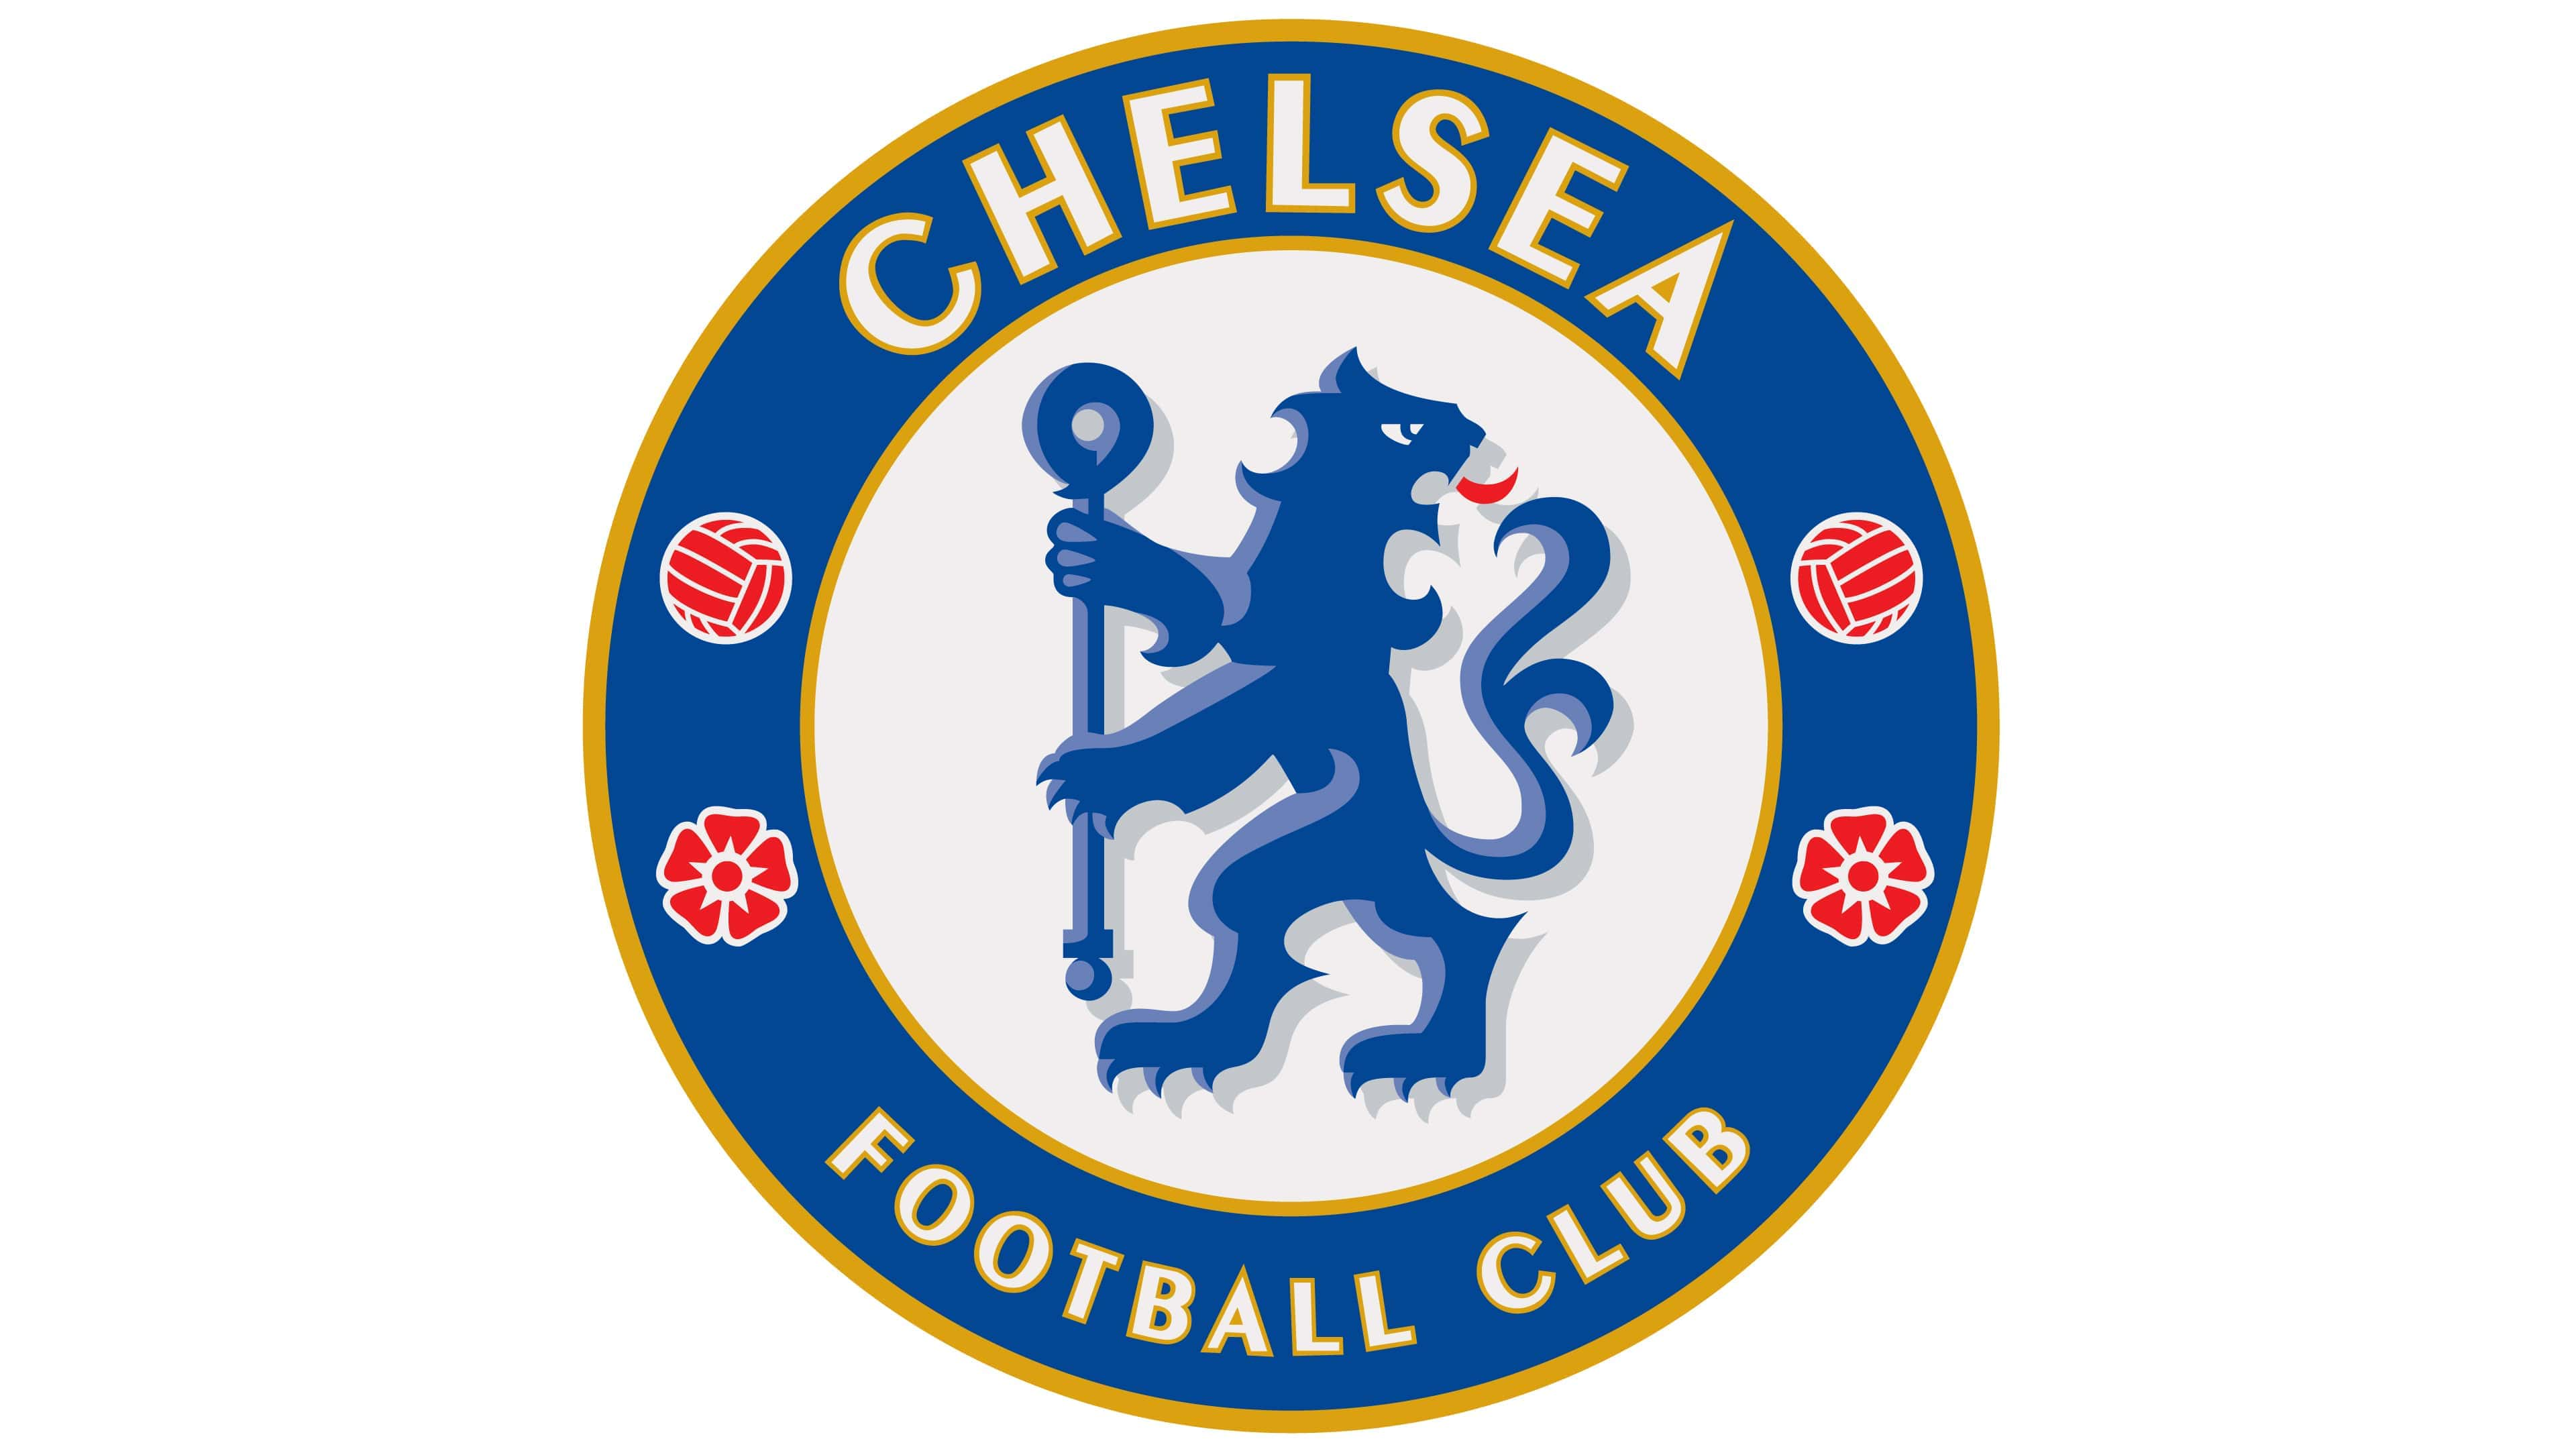 Chelsea Logo   The most famous brands and company logos in the world